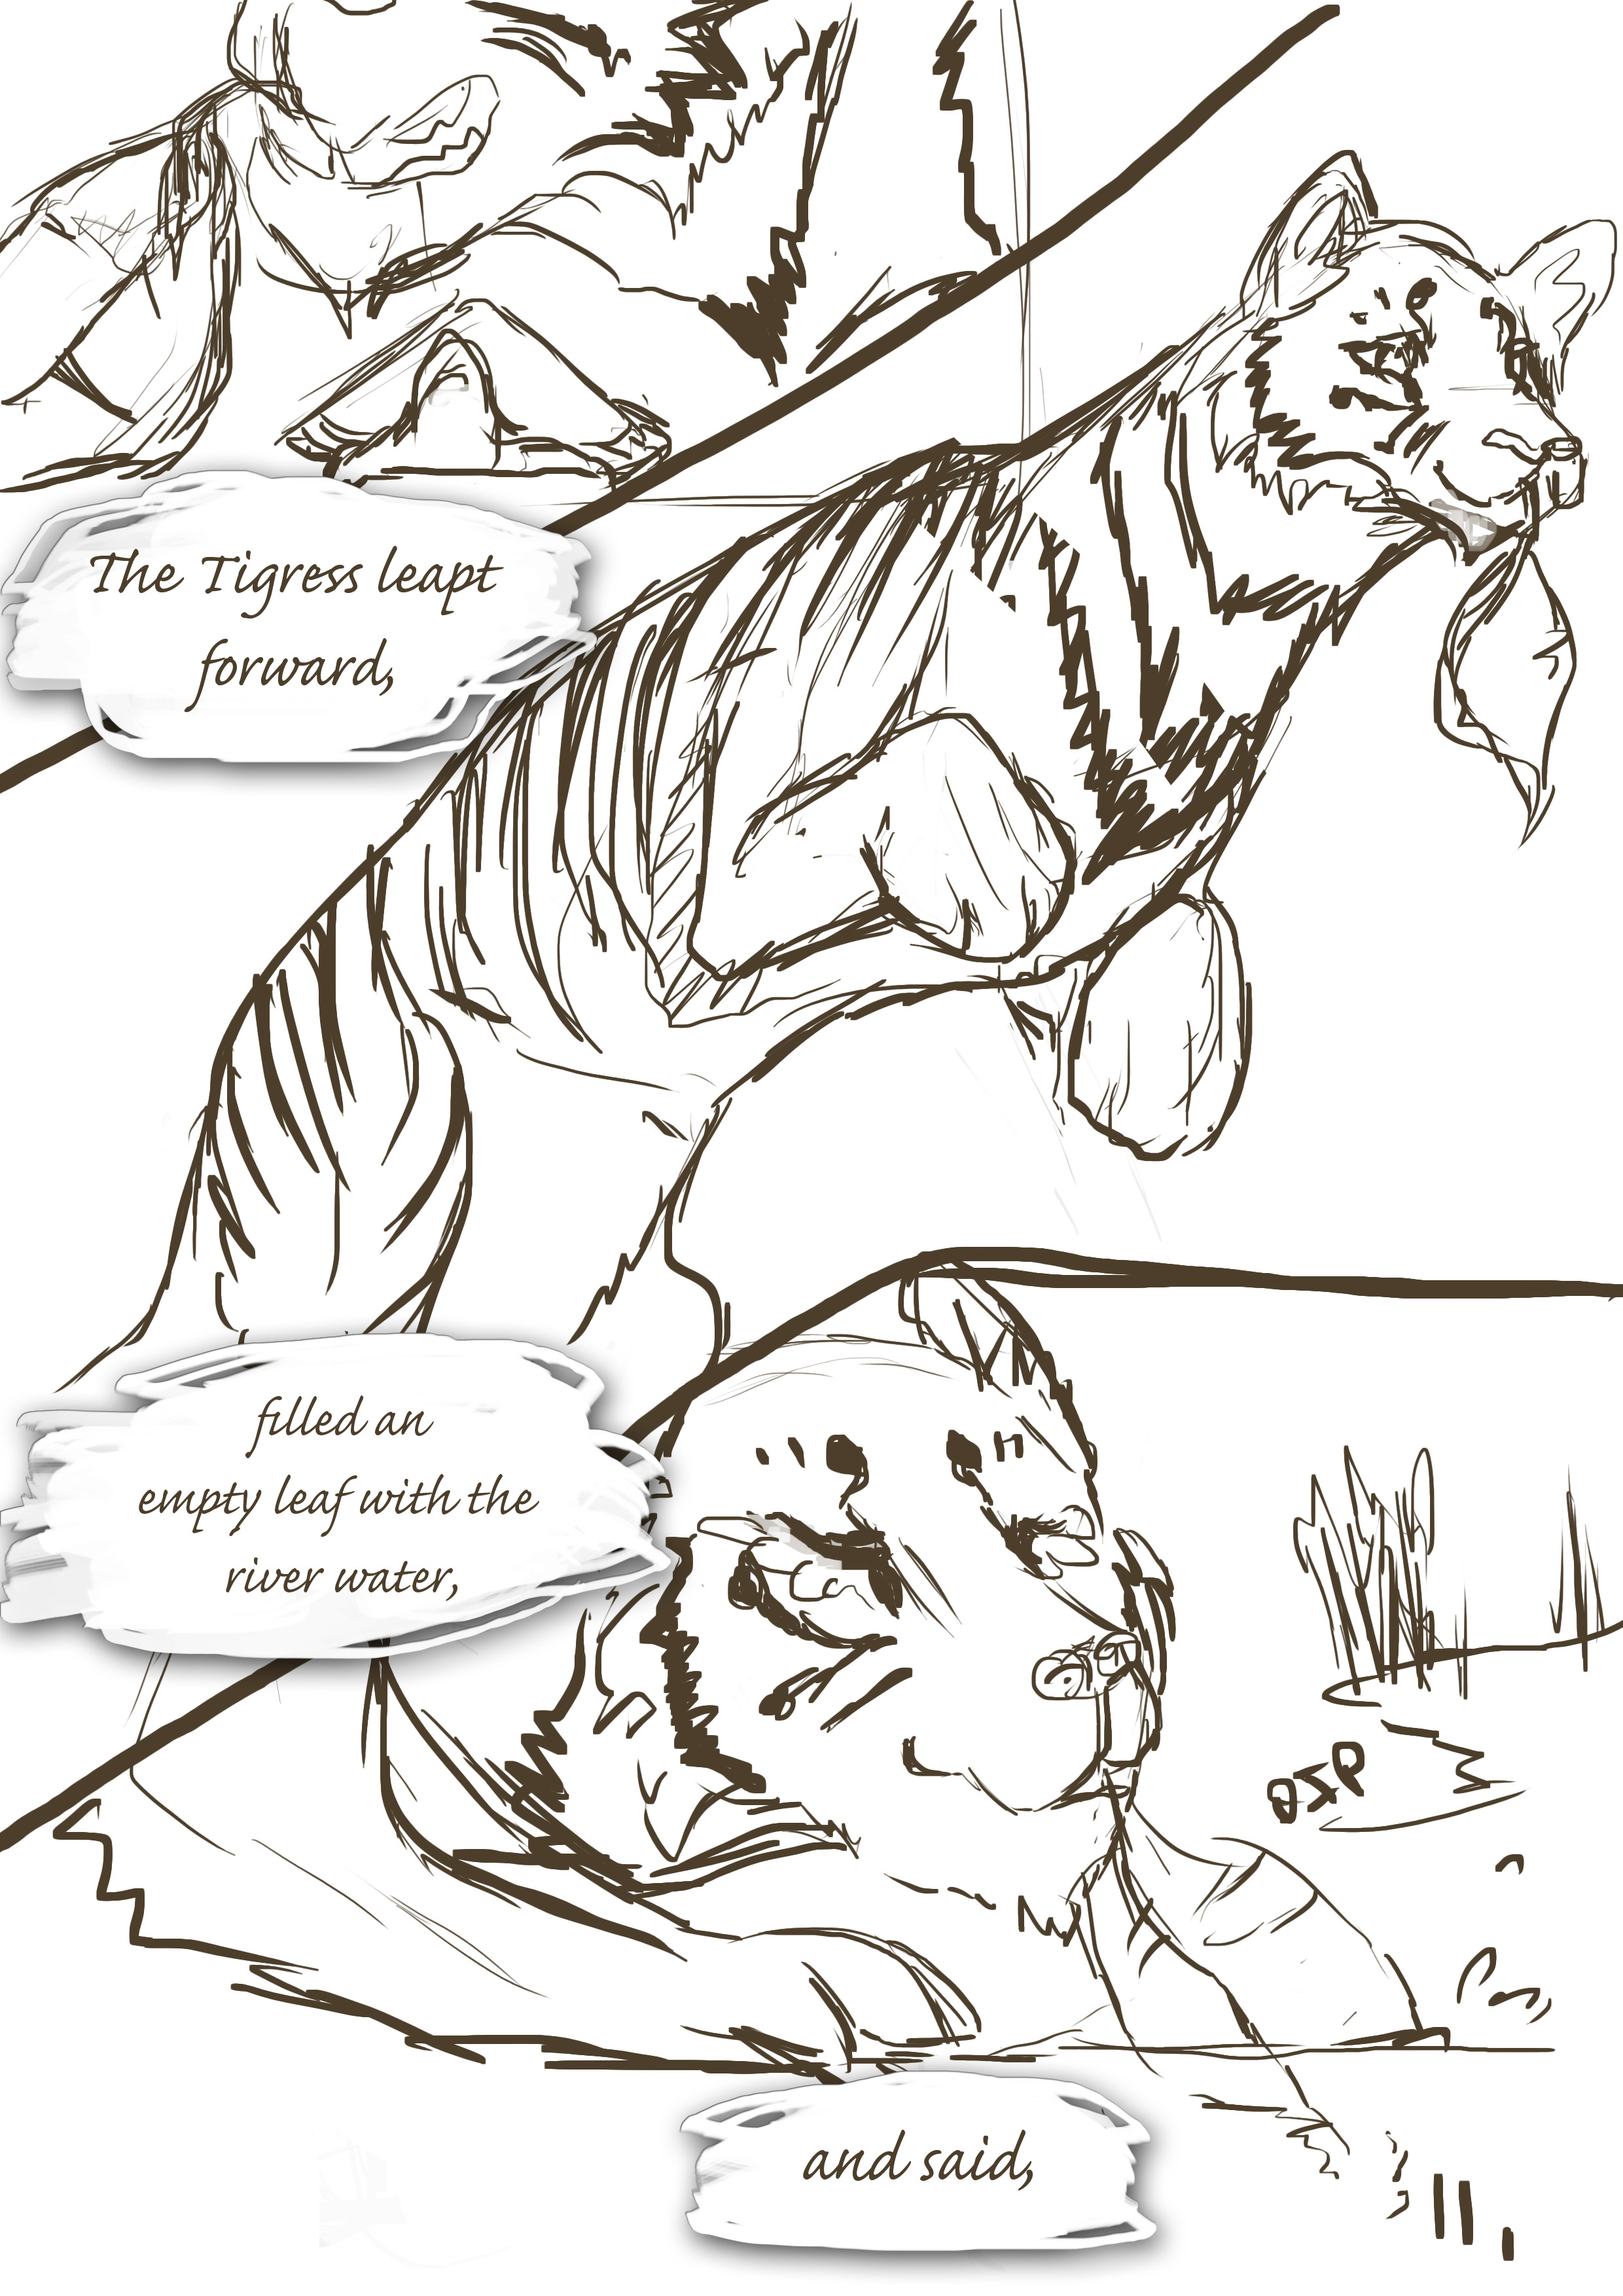 The Turtle and The Tigress 11